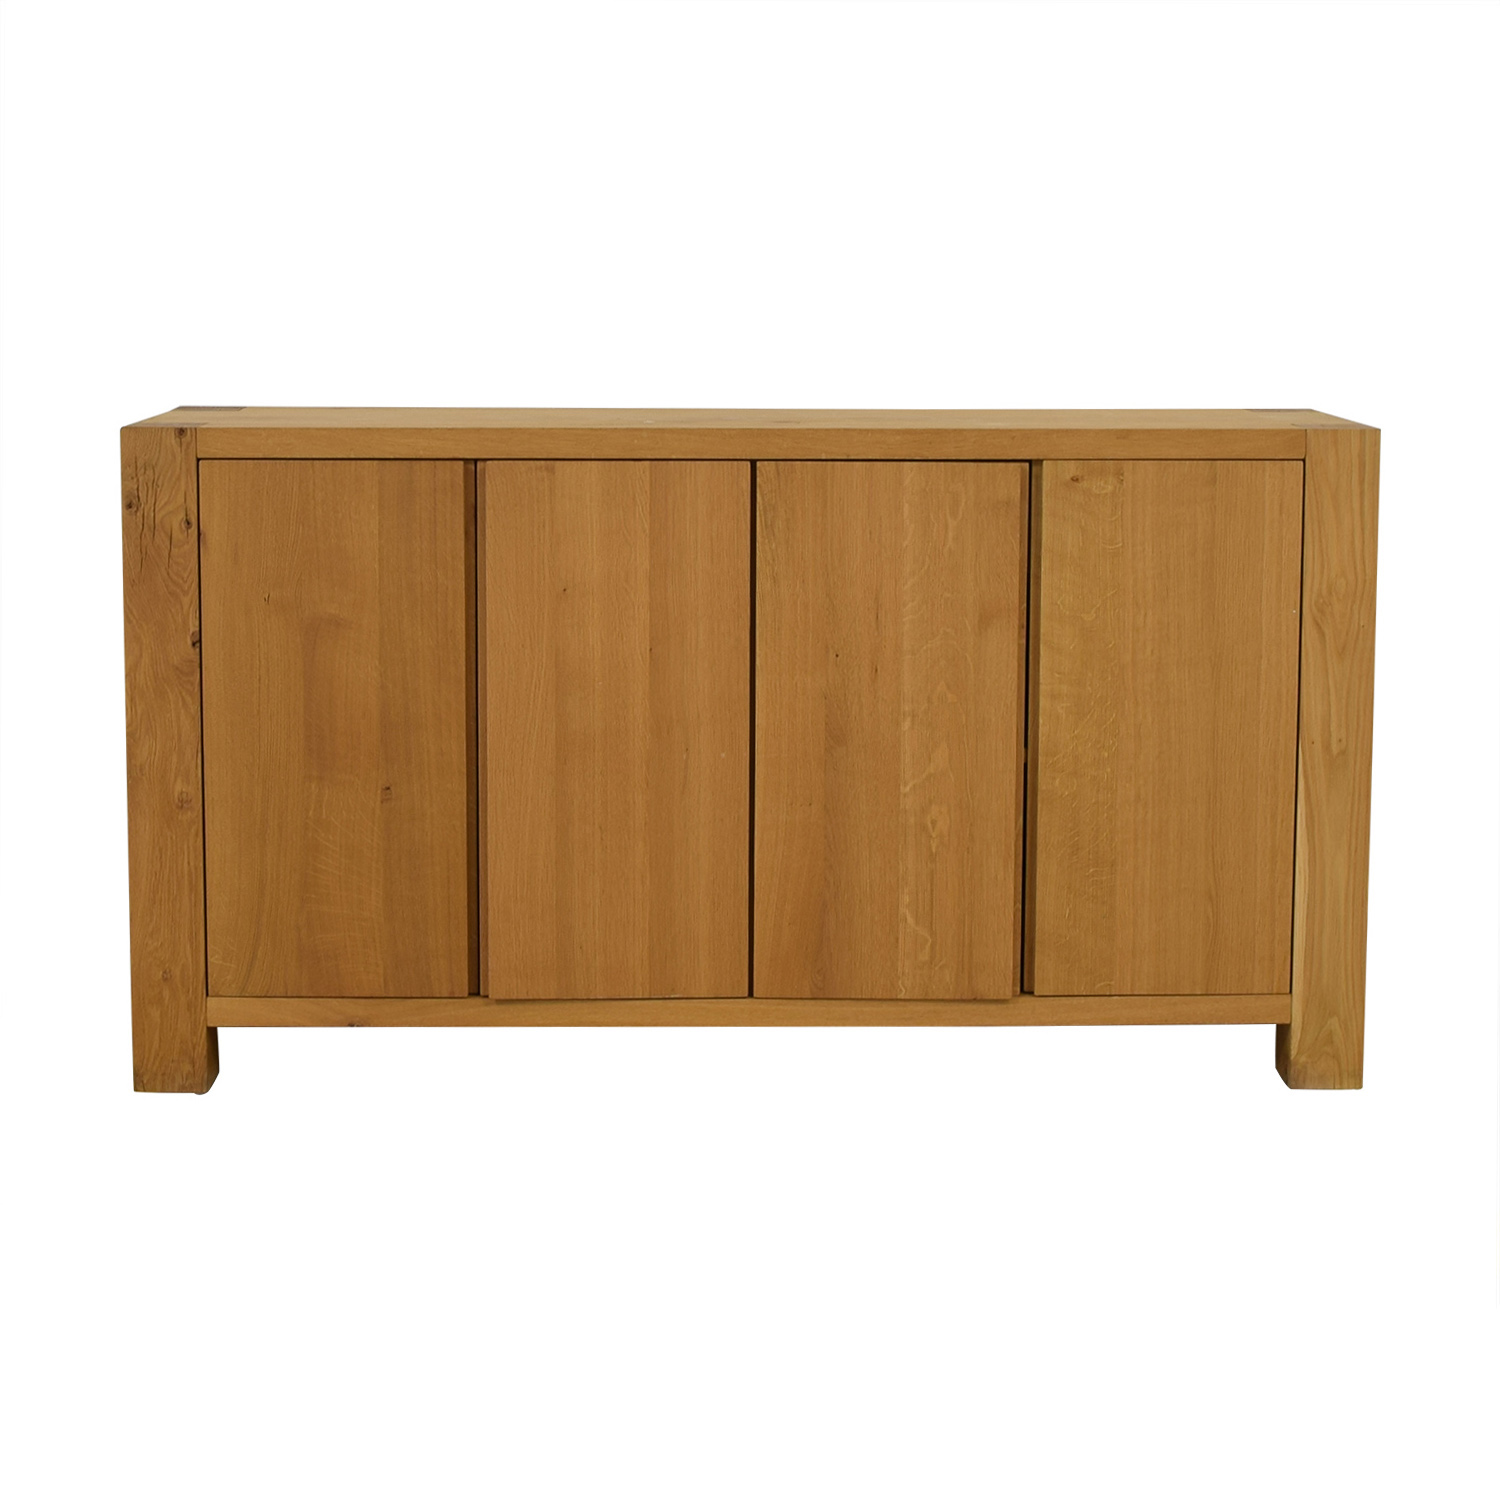 Crate & Barrel Crate & Barrel Big Sur Sideboard used